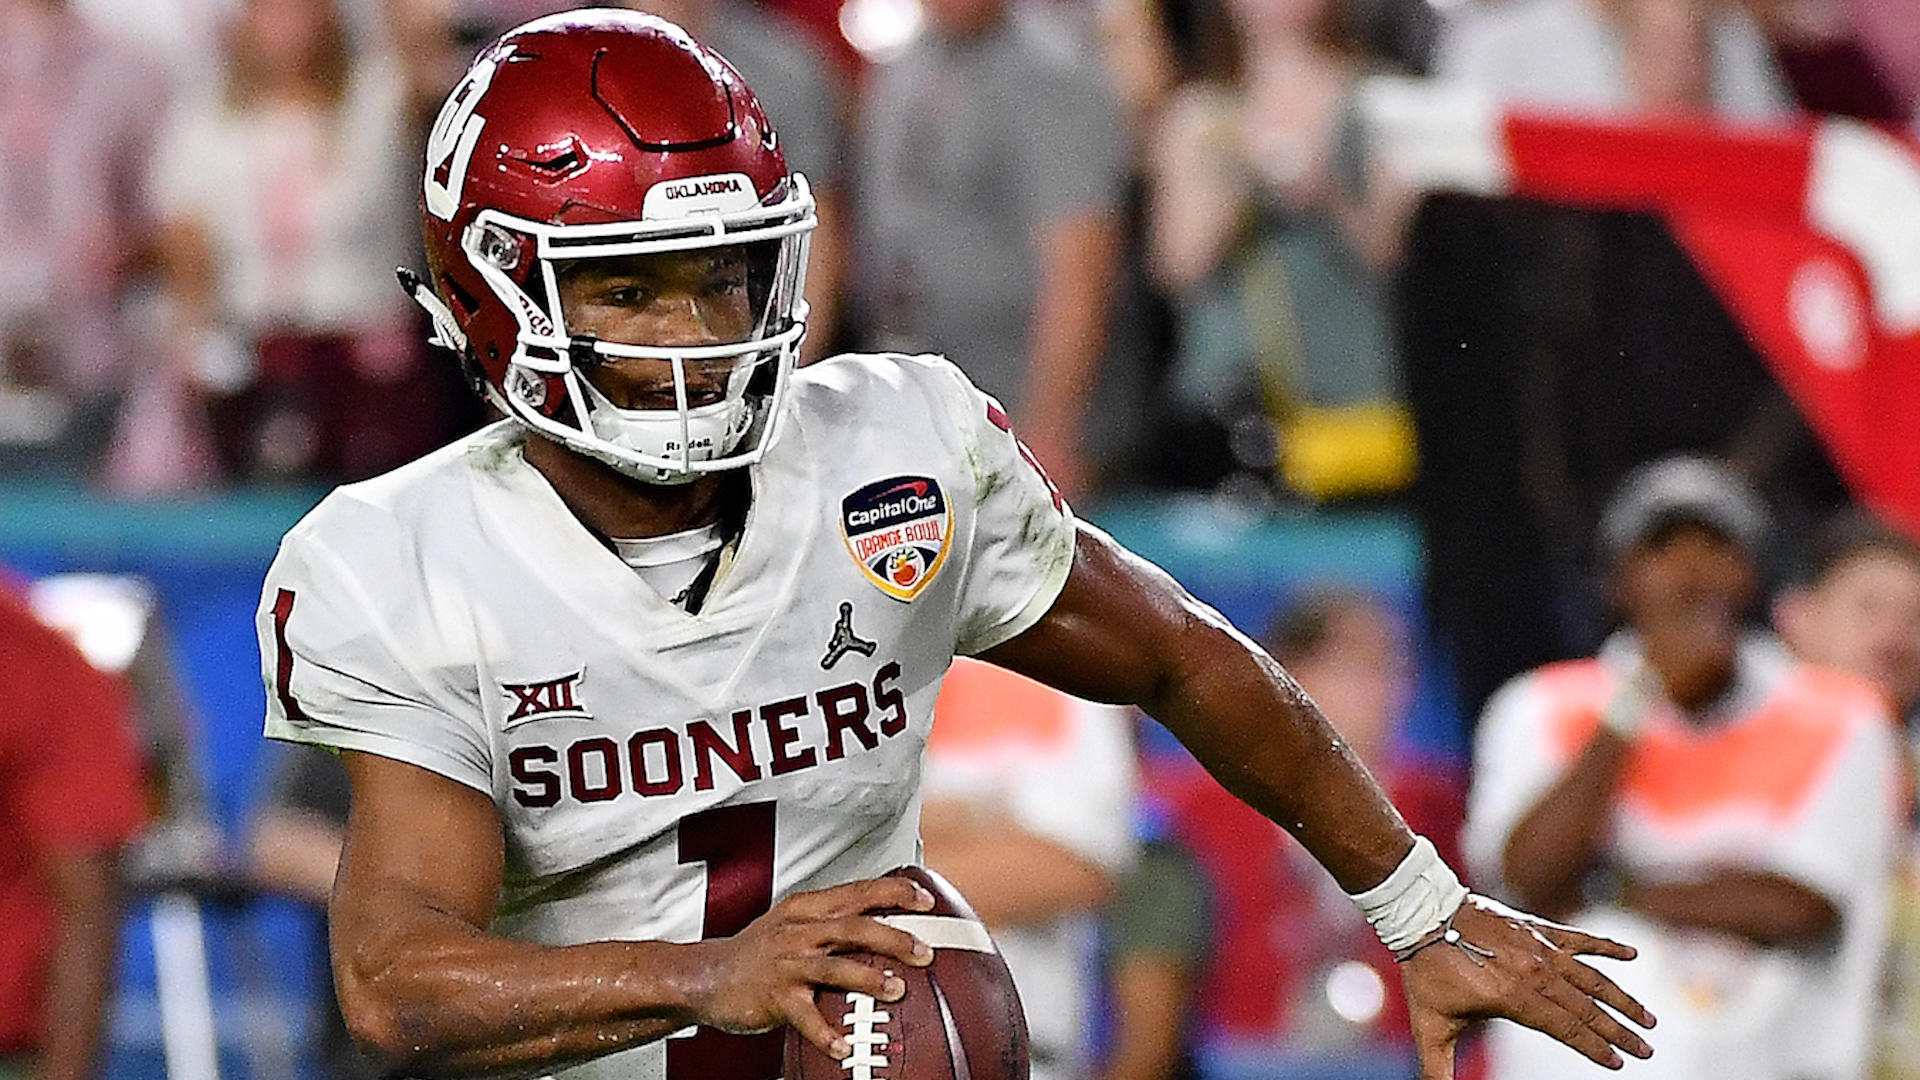 These 10 college football teams were hit hardest by early entries in the 2019 NFL Draft